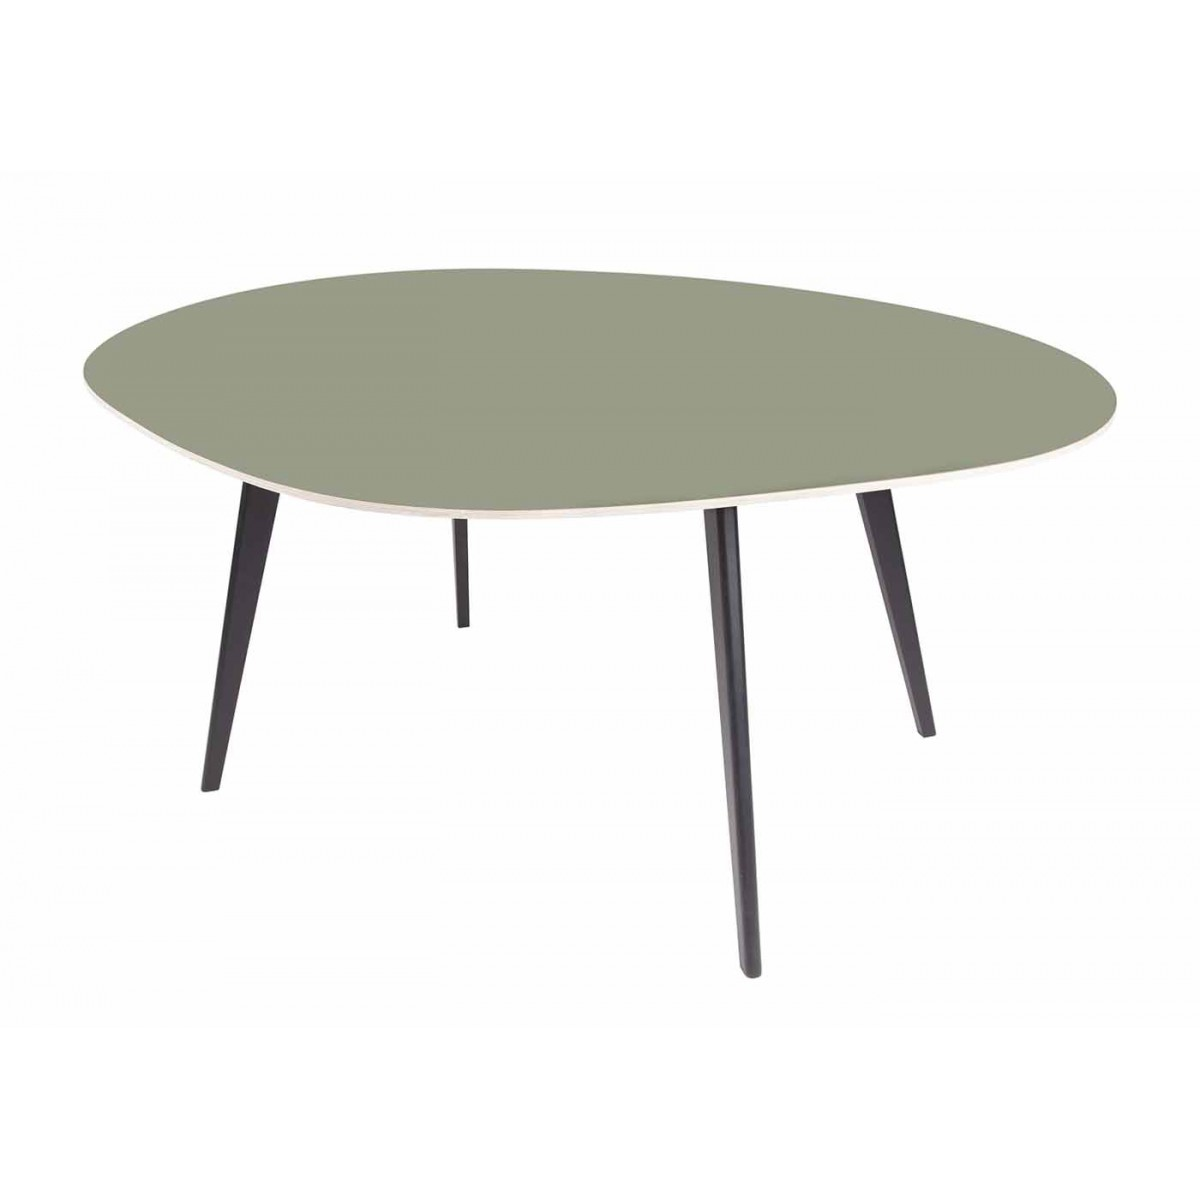 Table d 39 appoint design scandinave sign e blomkal - Hauteur table de salon ...